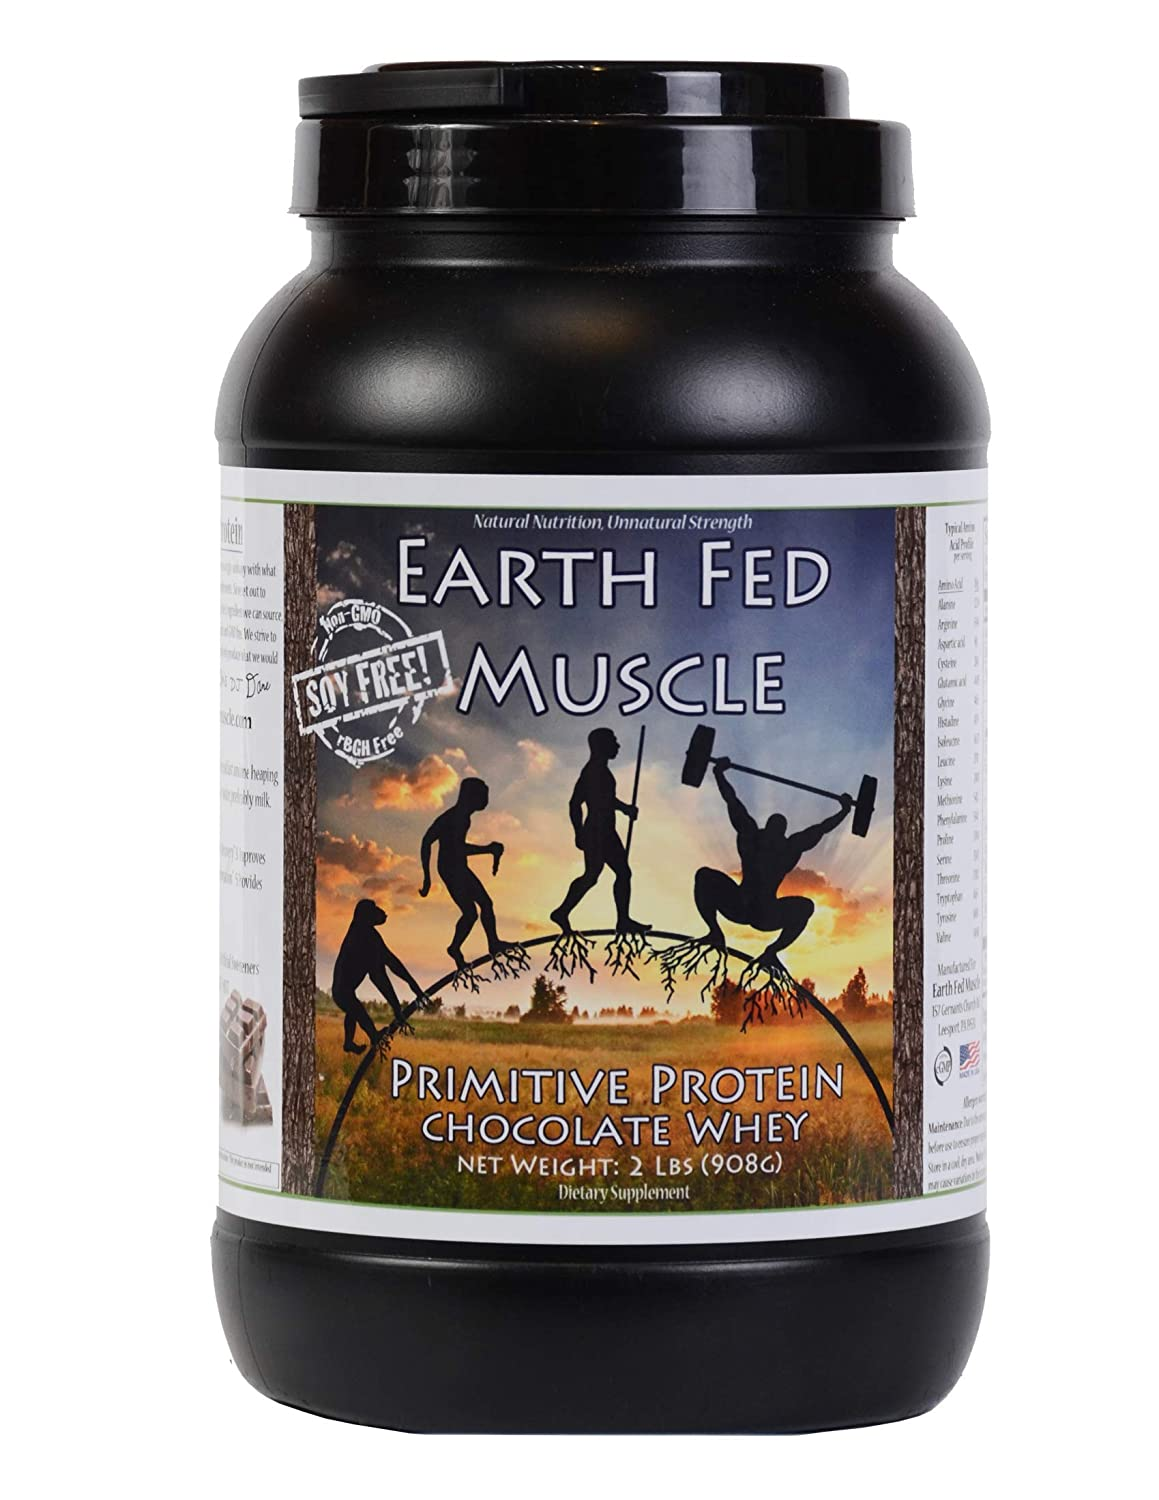 Earth Fed Muscle Primitive Protein Chocolate Whey 2lb – No Fillers, Flow Agents, or Synthetic Blends, Soy Free, Non GMO and Hormone Free Chocolate